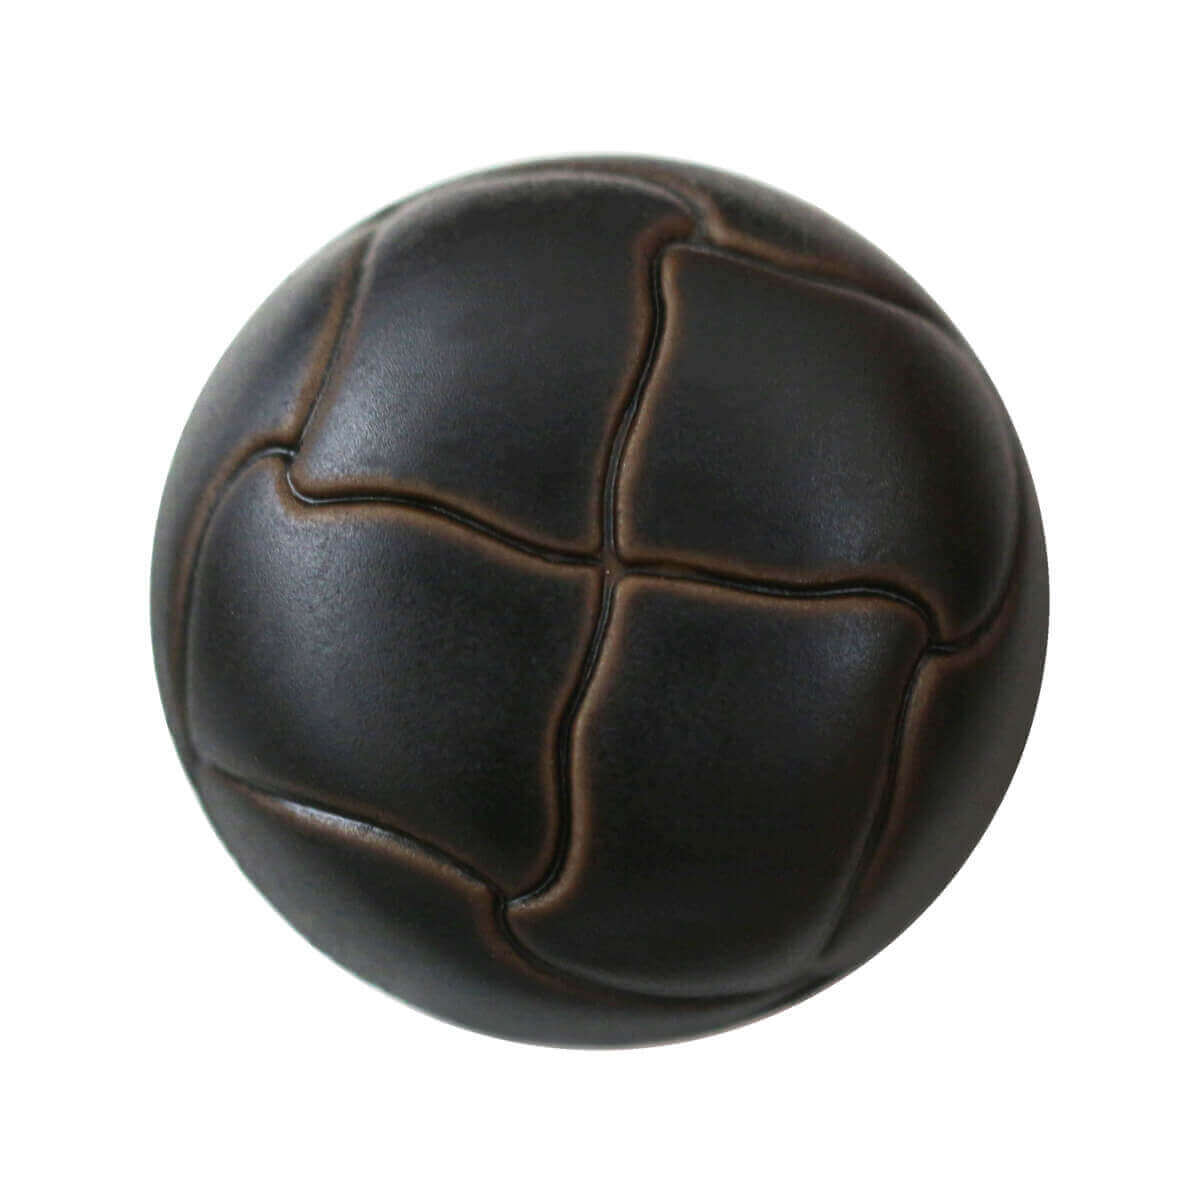 G077-YTA8-nylon-button-imitation-leather-color-dark-brown